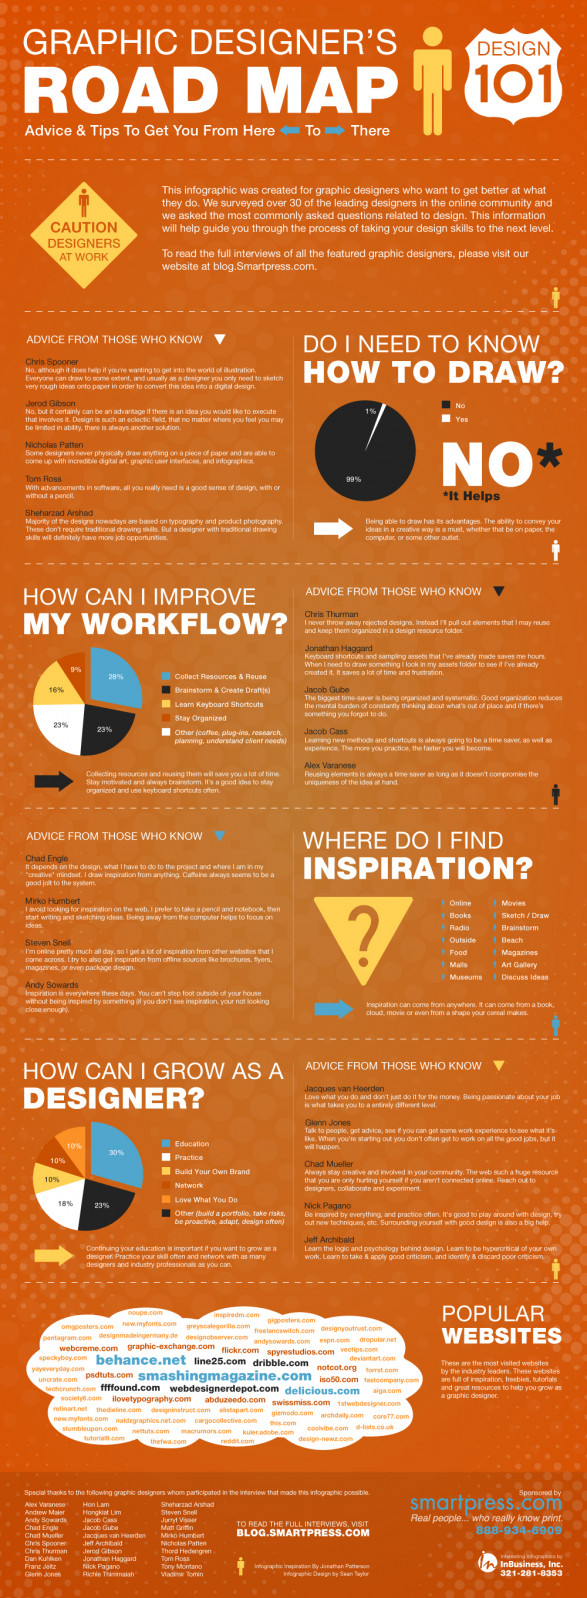 Graphic Designers Road Map